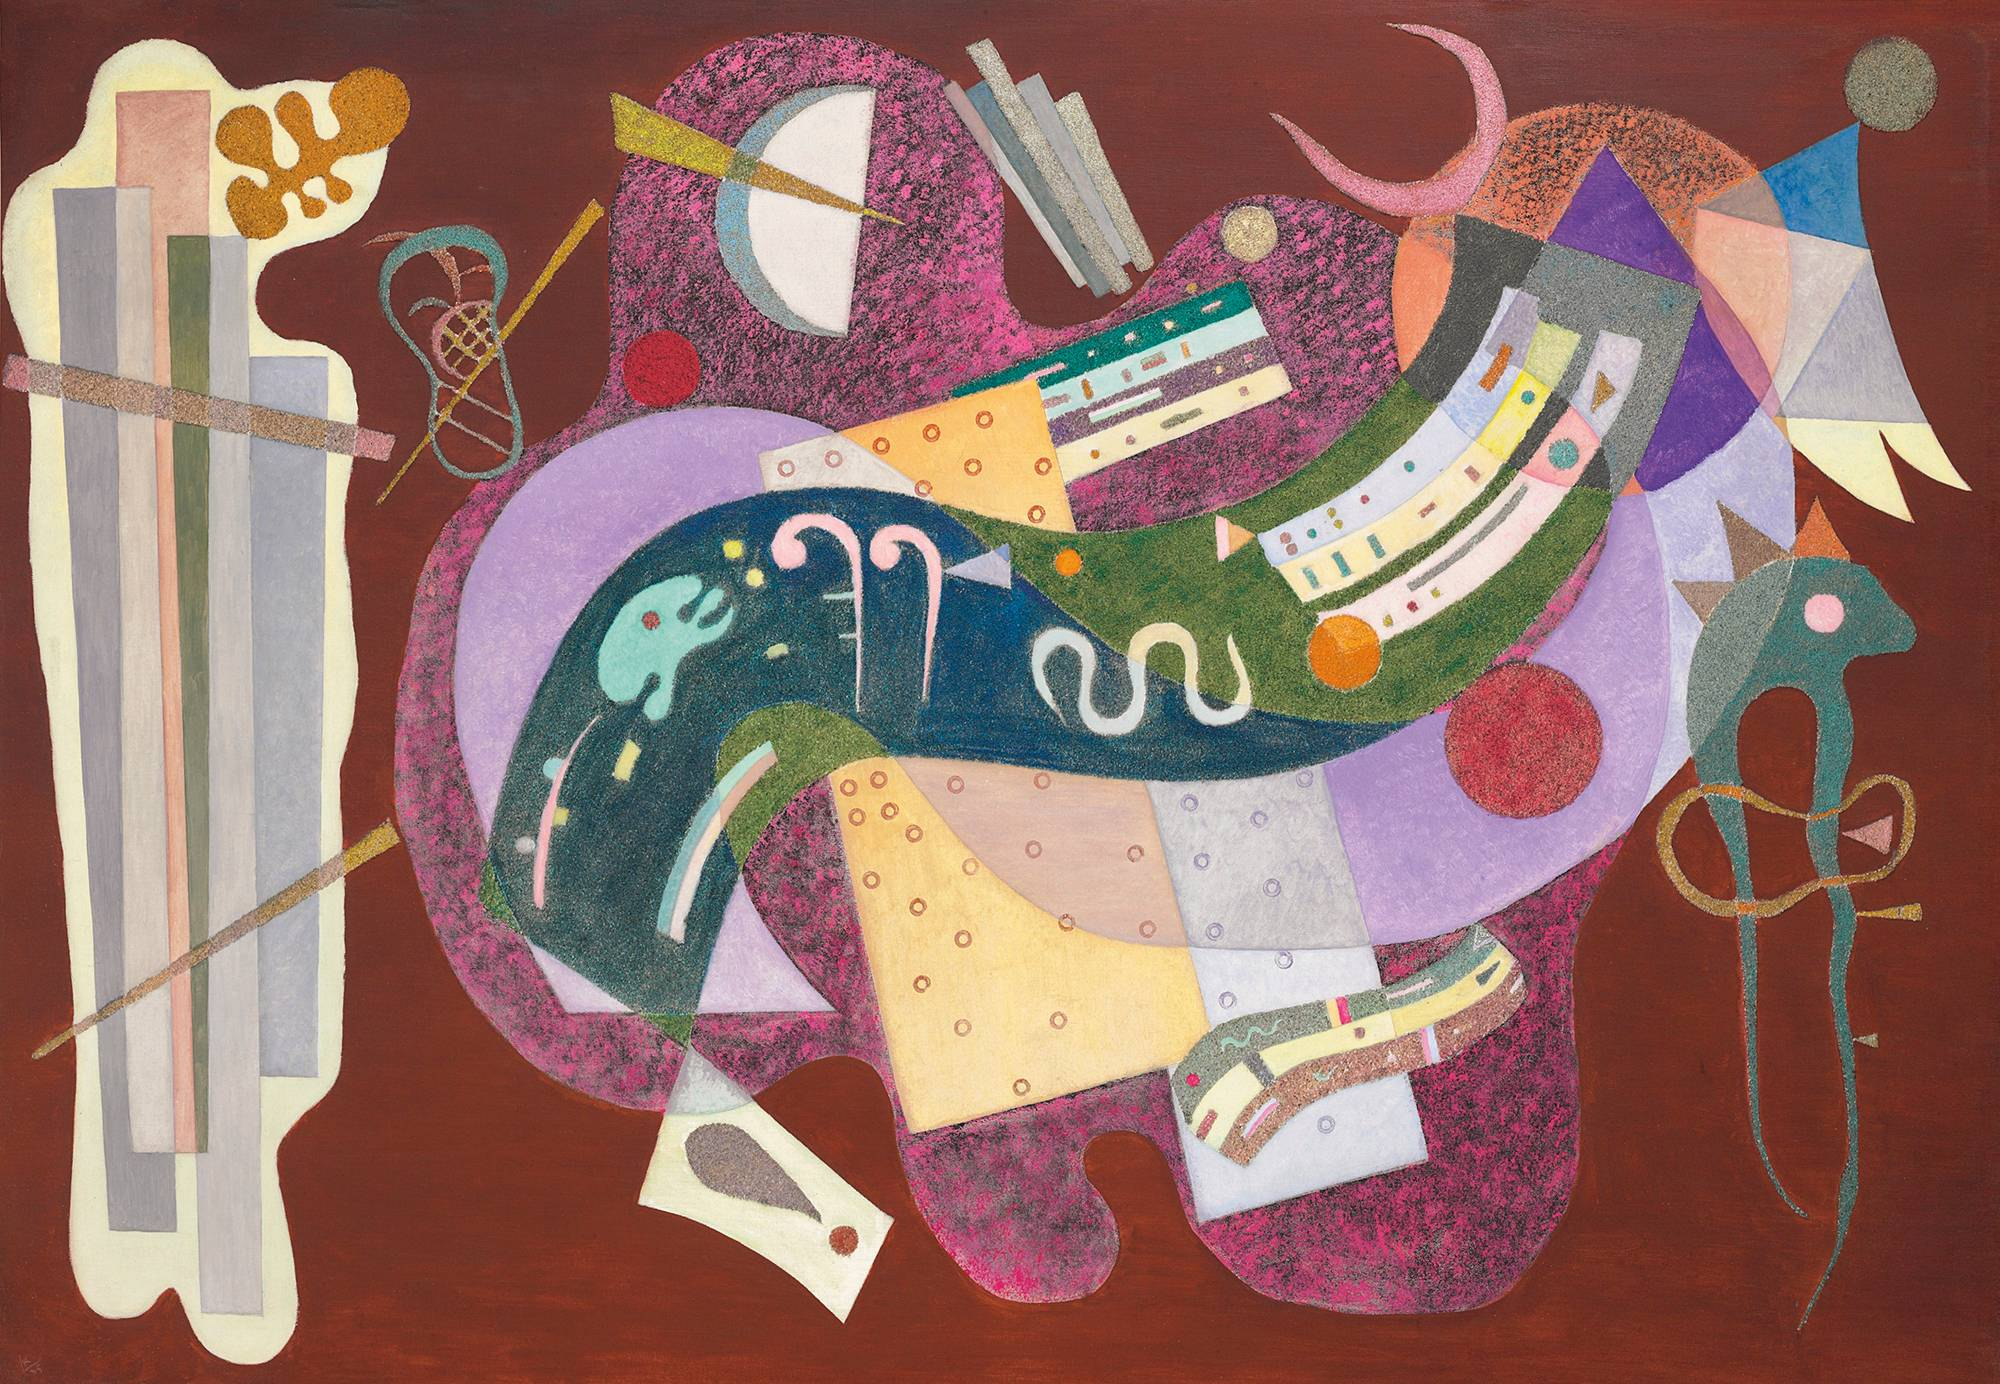 Wassily Kandinsky (1866-1944), Rigide et Courbé, 1935. Oil and sand on canvas. 44⅞ x 63⅞ in (114 x 162.4 cm). Estimate $18,000,000-25,000,000. This work is offered in the Impressionist & Modern Art Evening Sale on 16 November at Christie's in New York